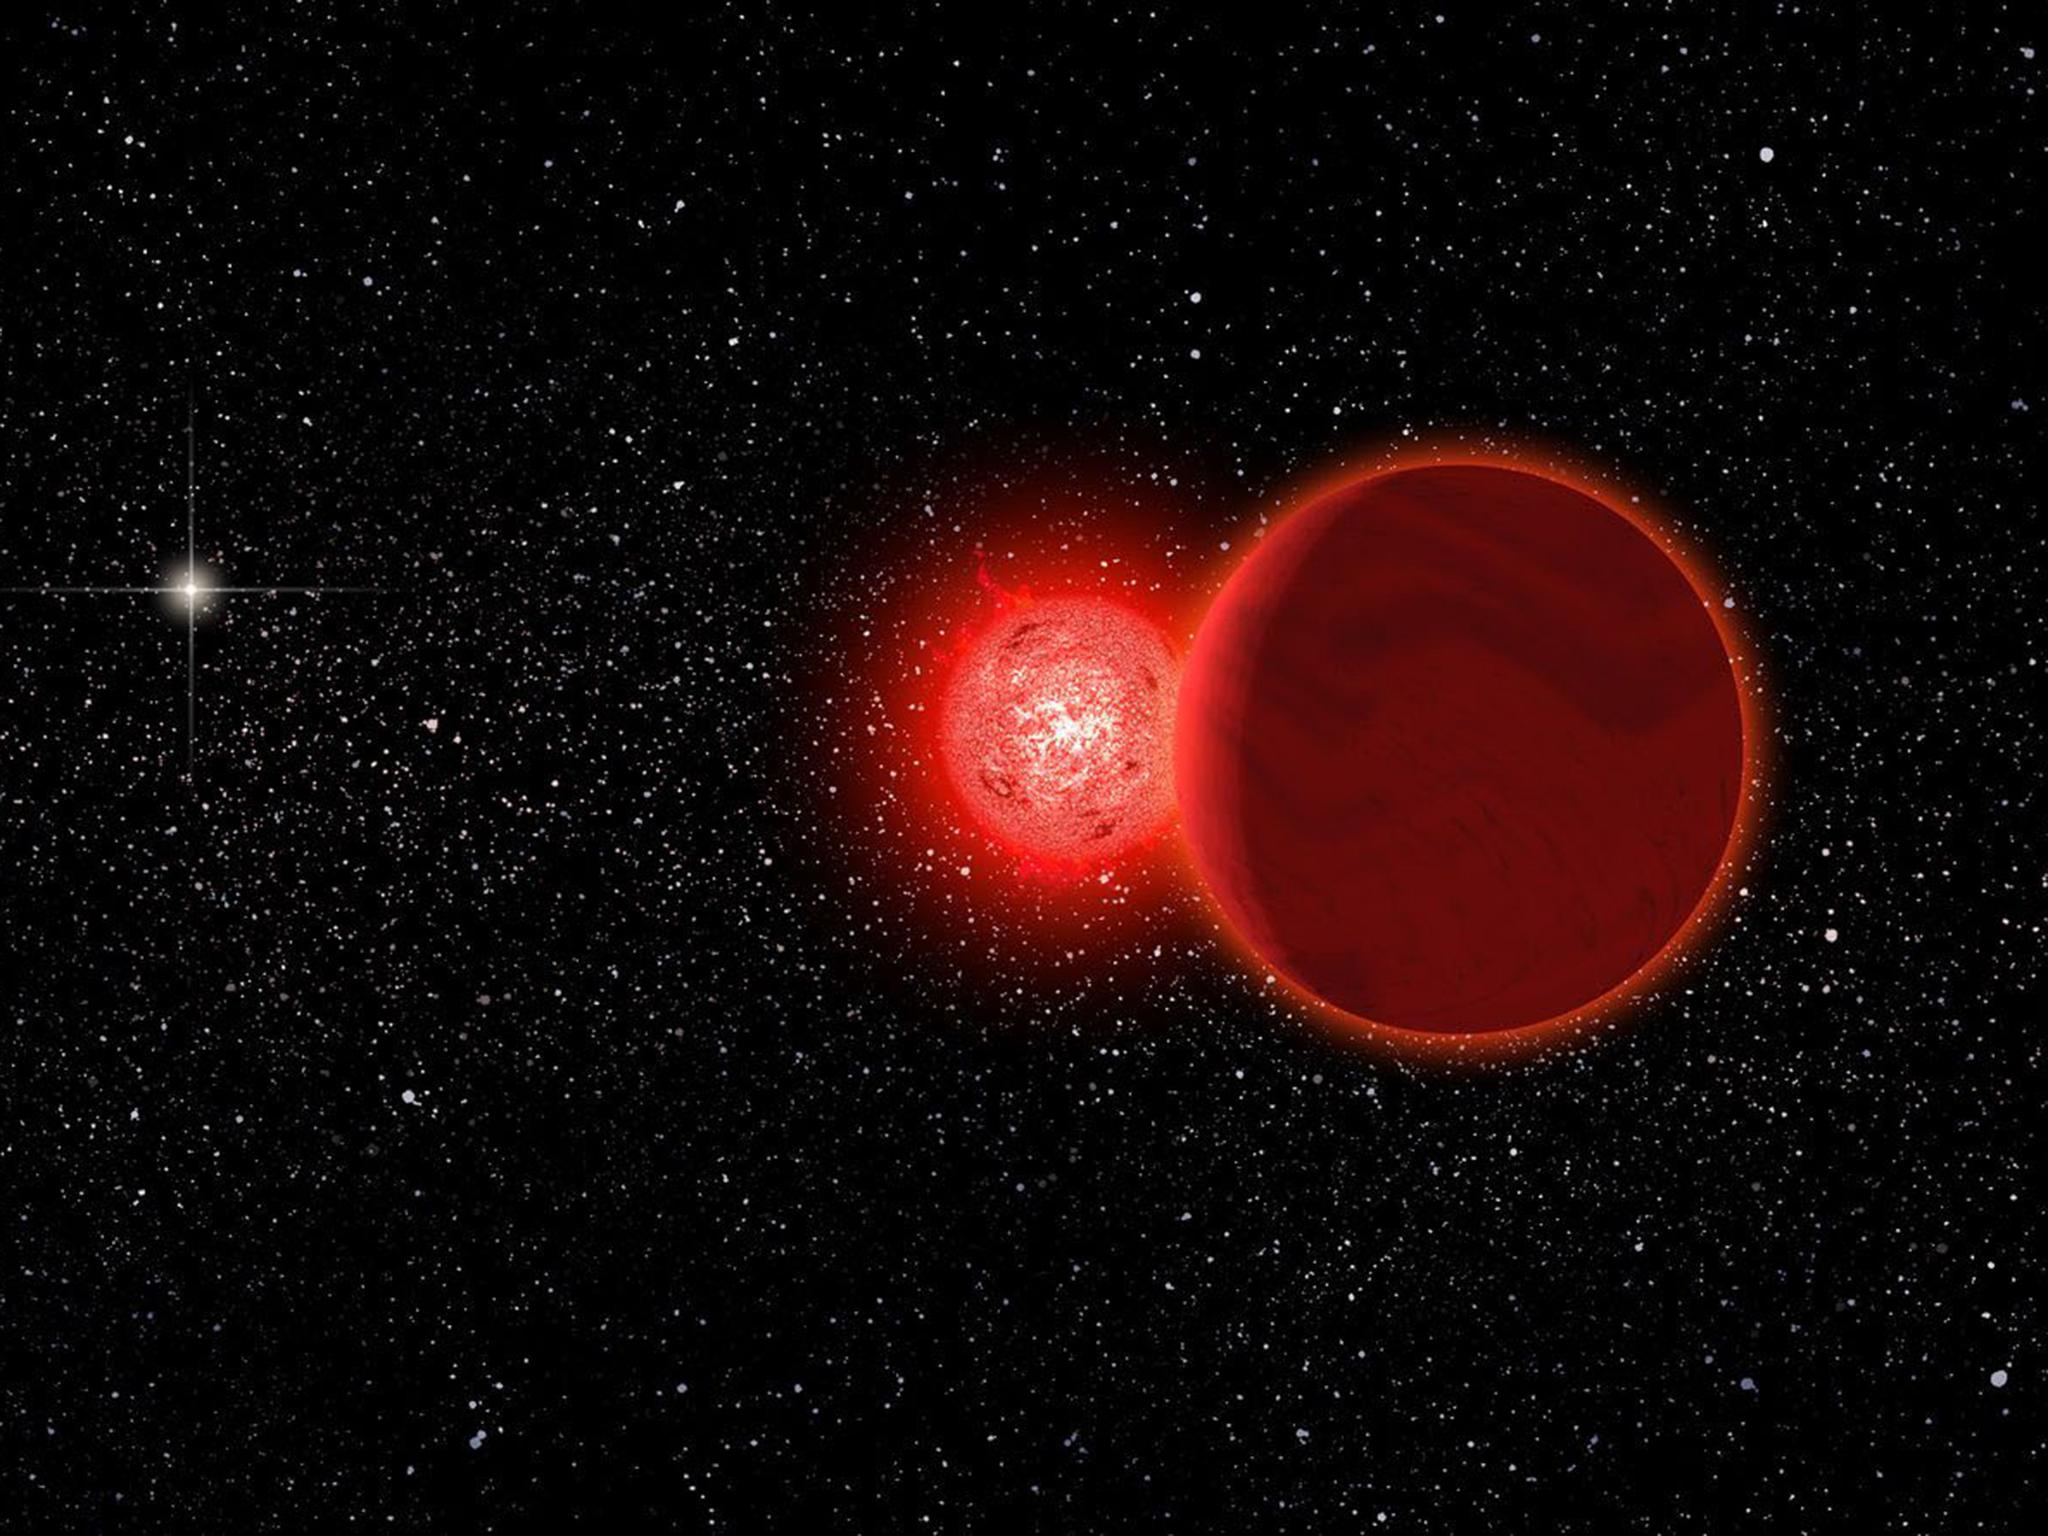 Alien star streaked through our solar system and jostled its contents, scientists say